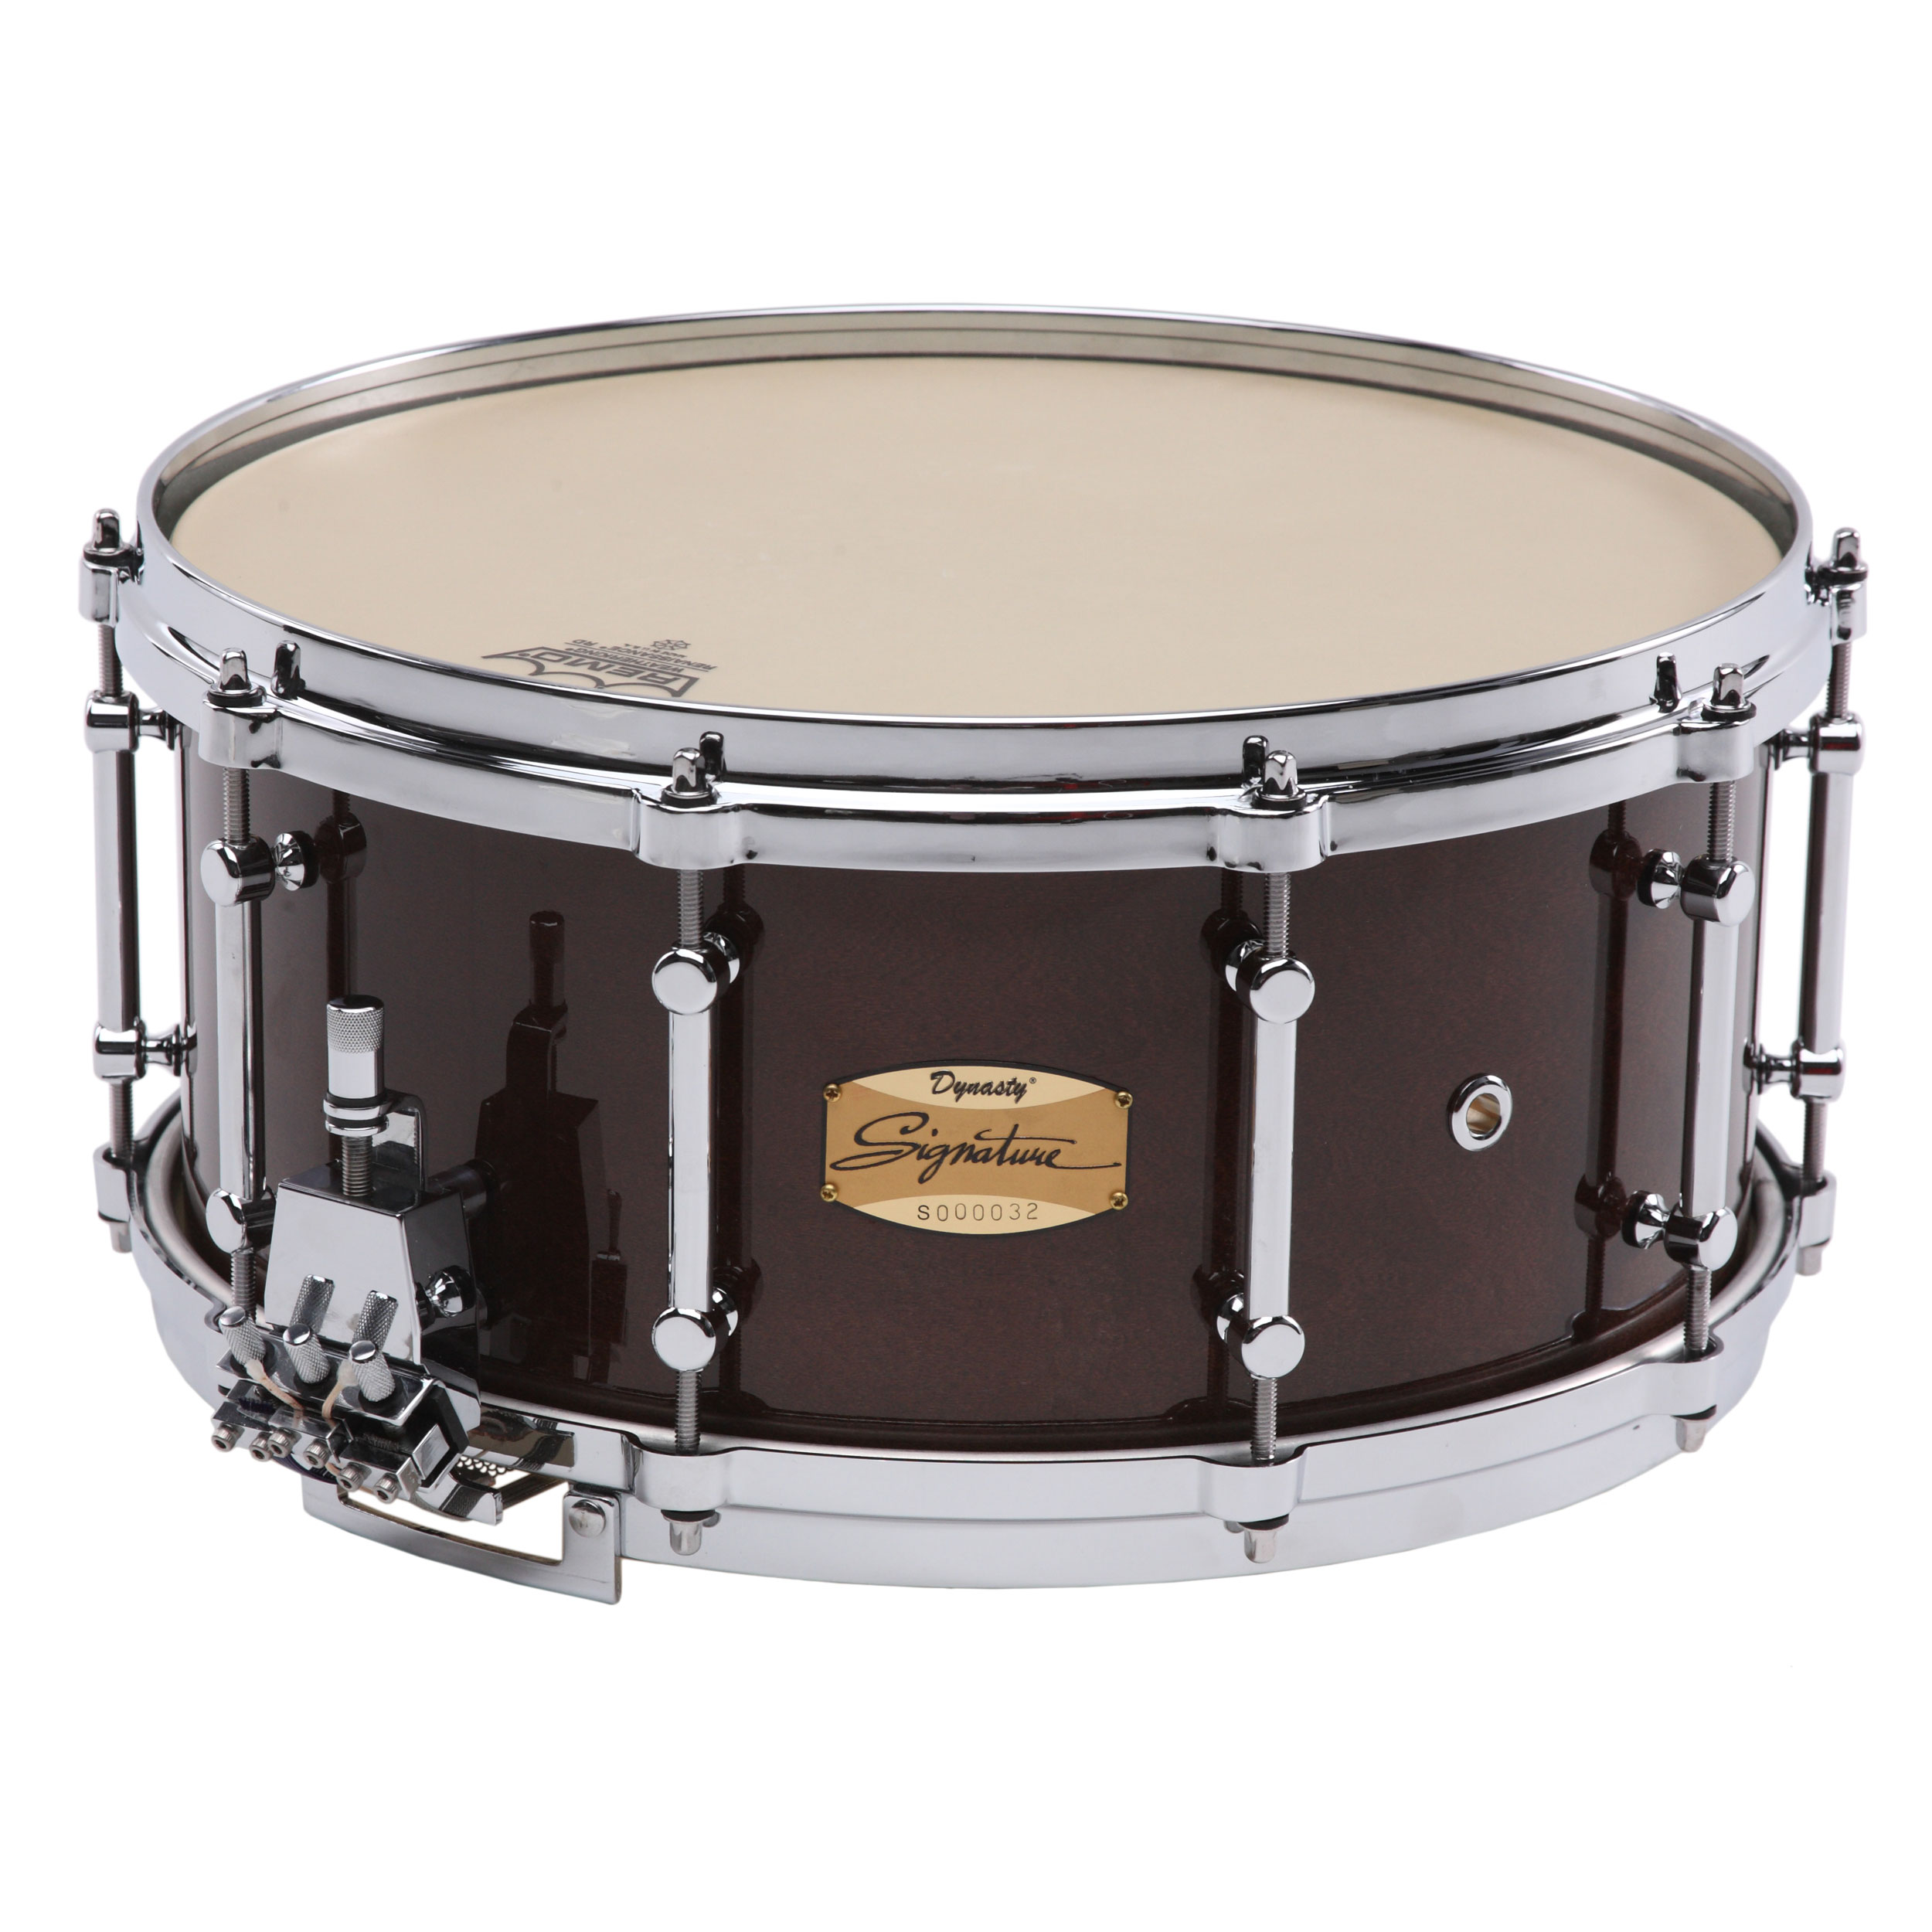 "Dynasty 14"" x 5"" Signature Professional Series Concert Snare Drum"